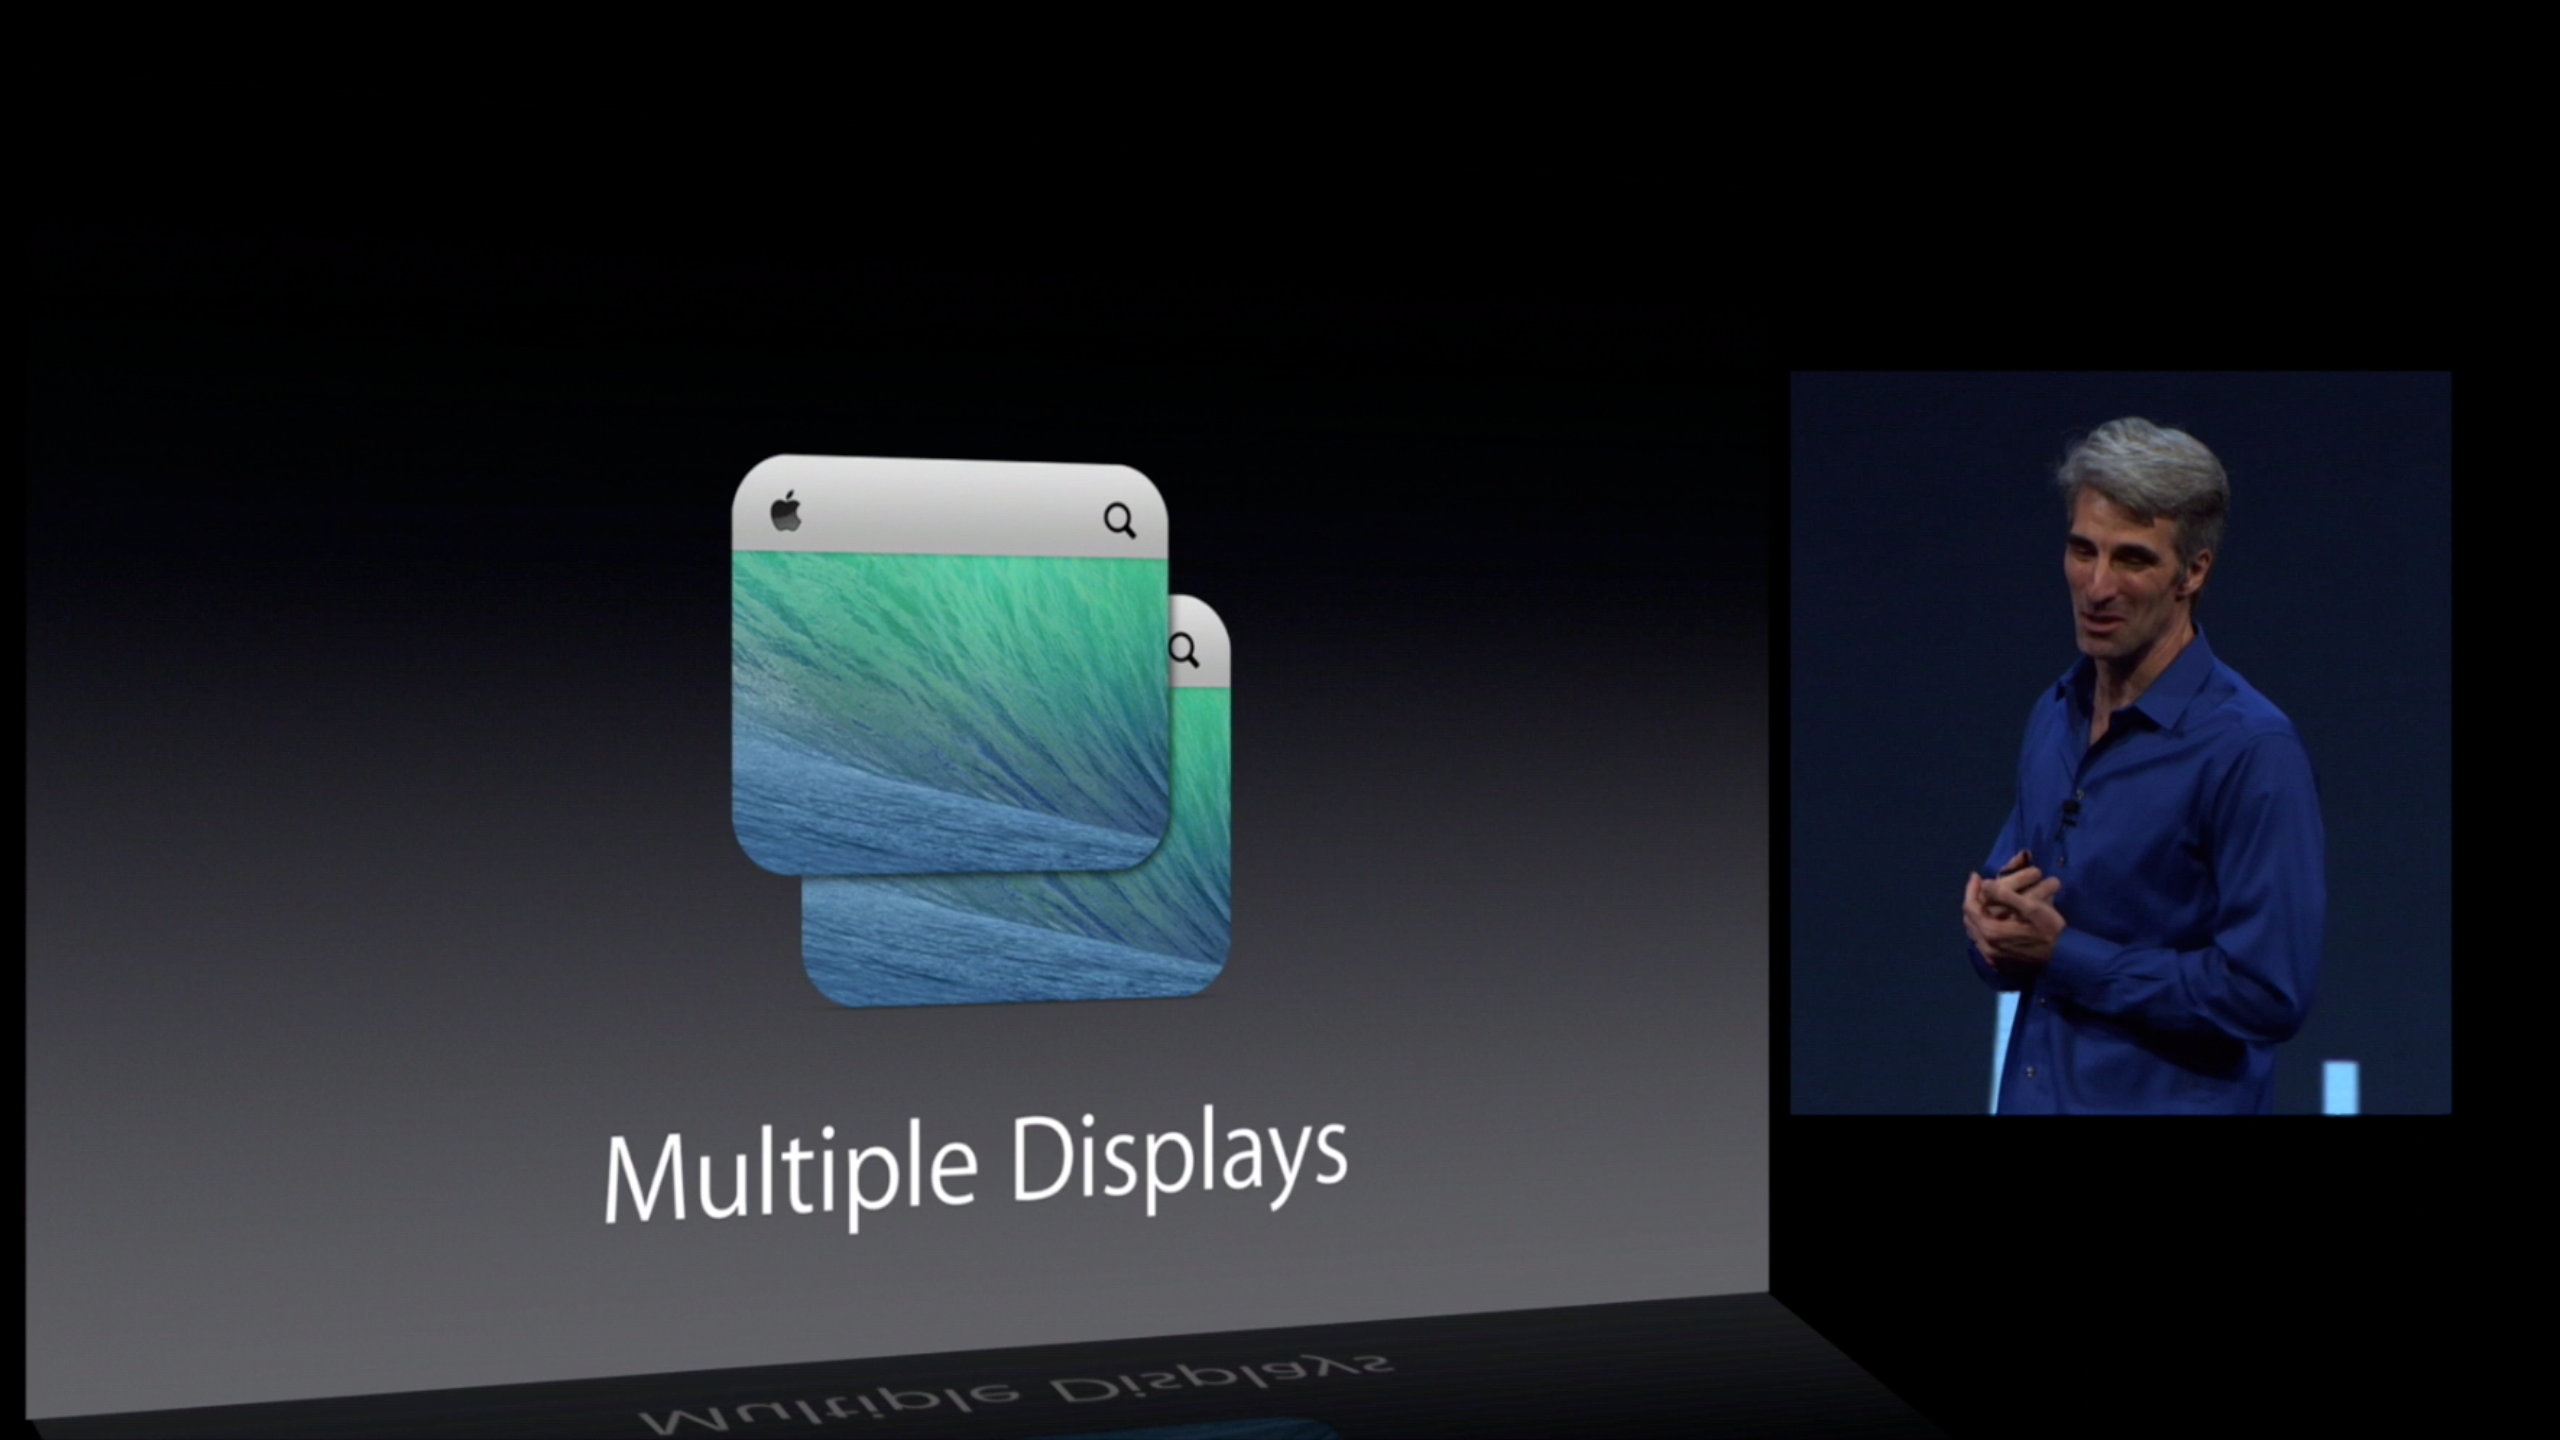 OS X Mavericks - Multiple Displays